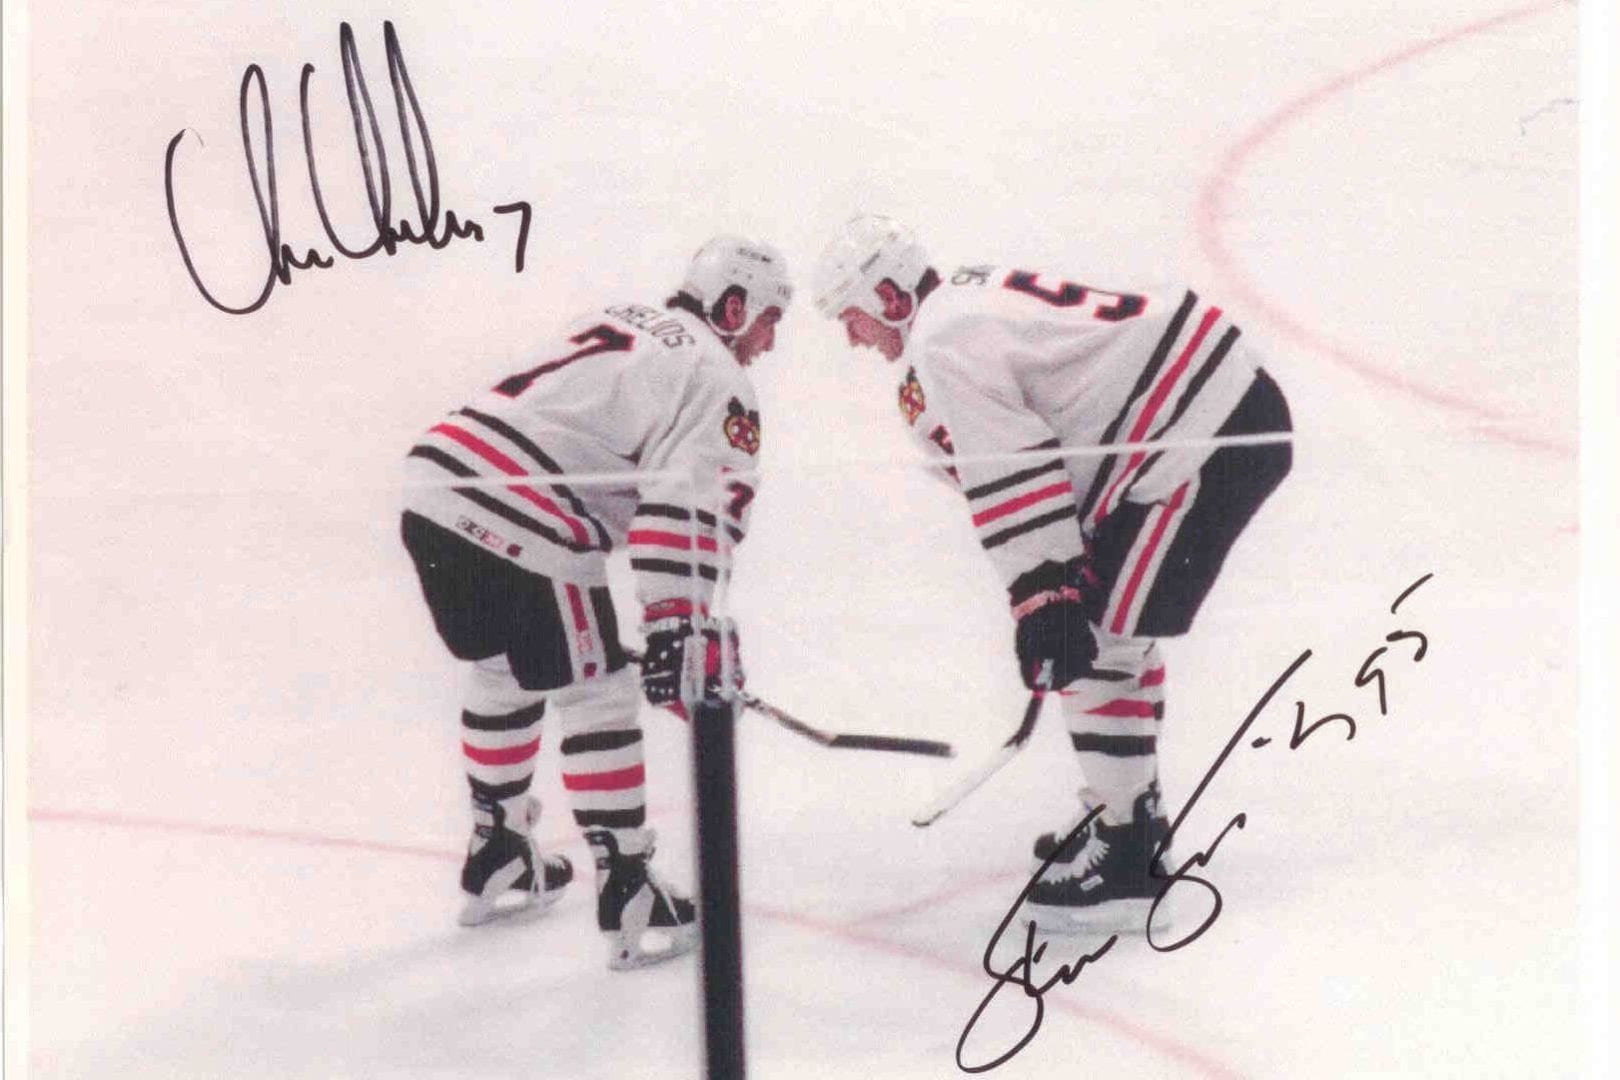 An autographed photo of Chris Chelios and Steve Smith